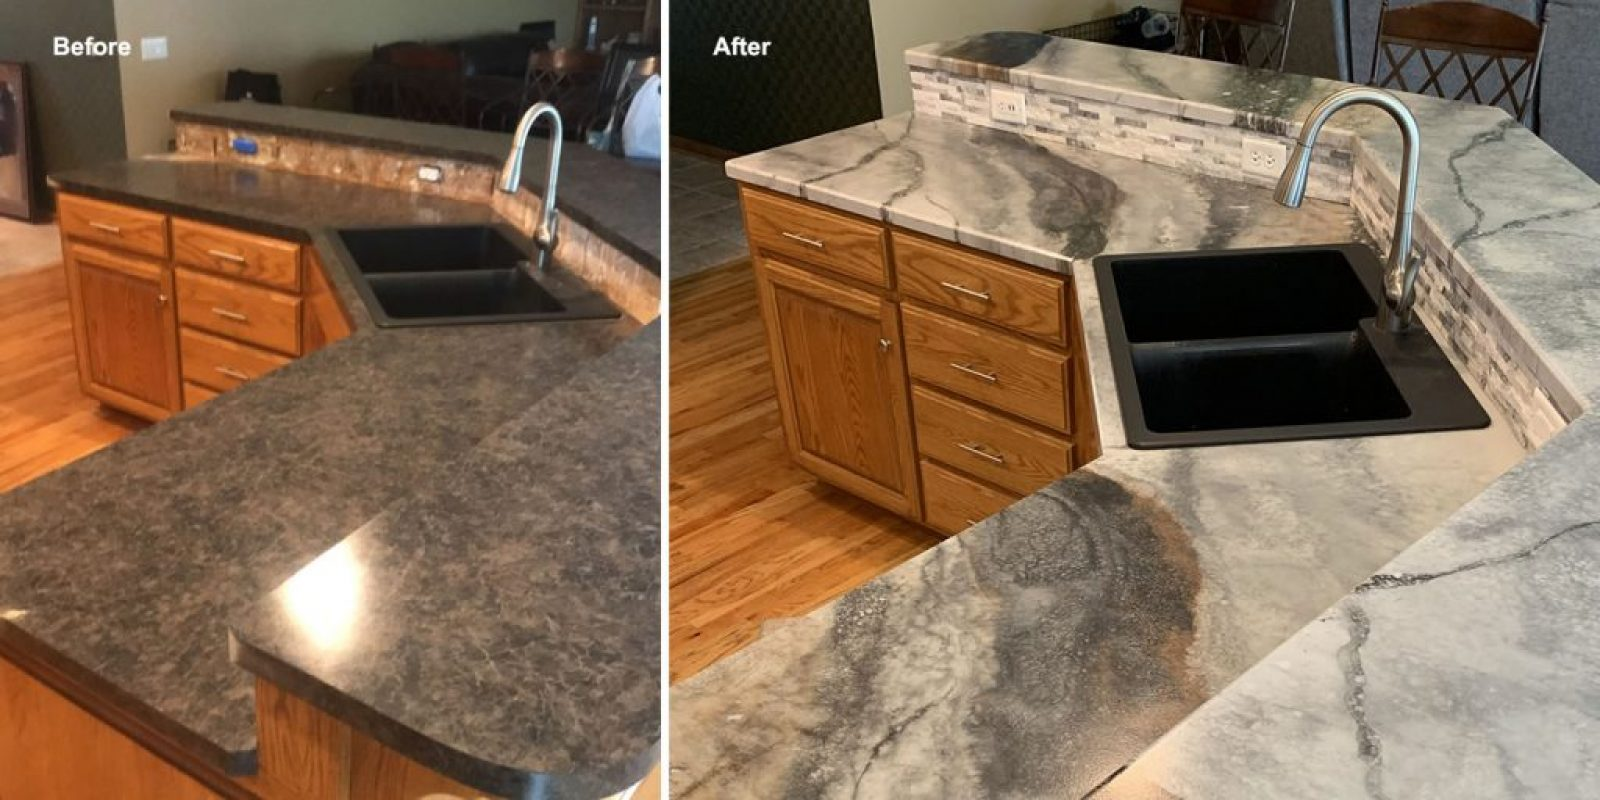 Countertop Resurfacing-Broward Bath Tub Reglazing & Tub Resurfacing Contractors-We do Water Bathroom Bathtub Reglazing, Bathtub Refinishing, Tub Resurfacing, Bathtub Restoration, Countertop Resurfacing, Ceramic Tile Refinishing, Acid Free Reglazing, Commercial Bathroom Reglazing, and more